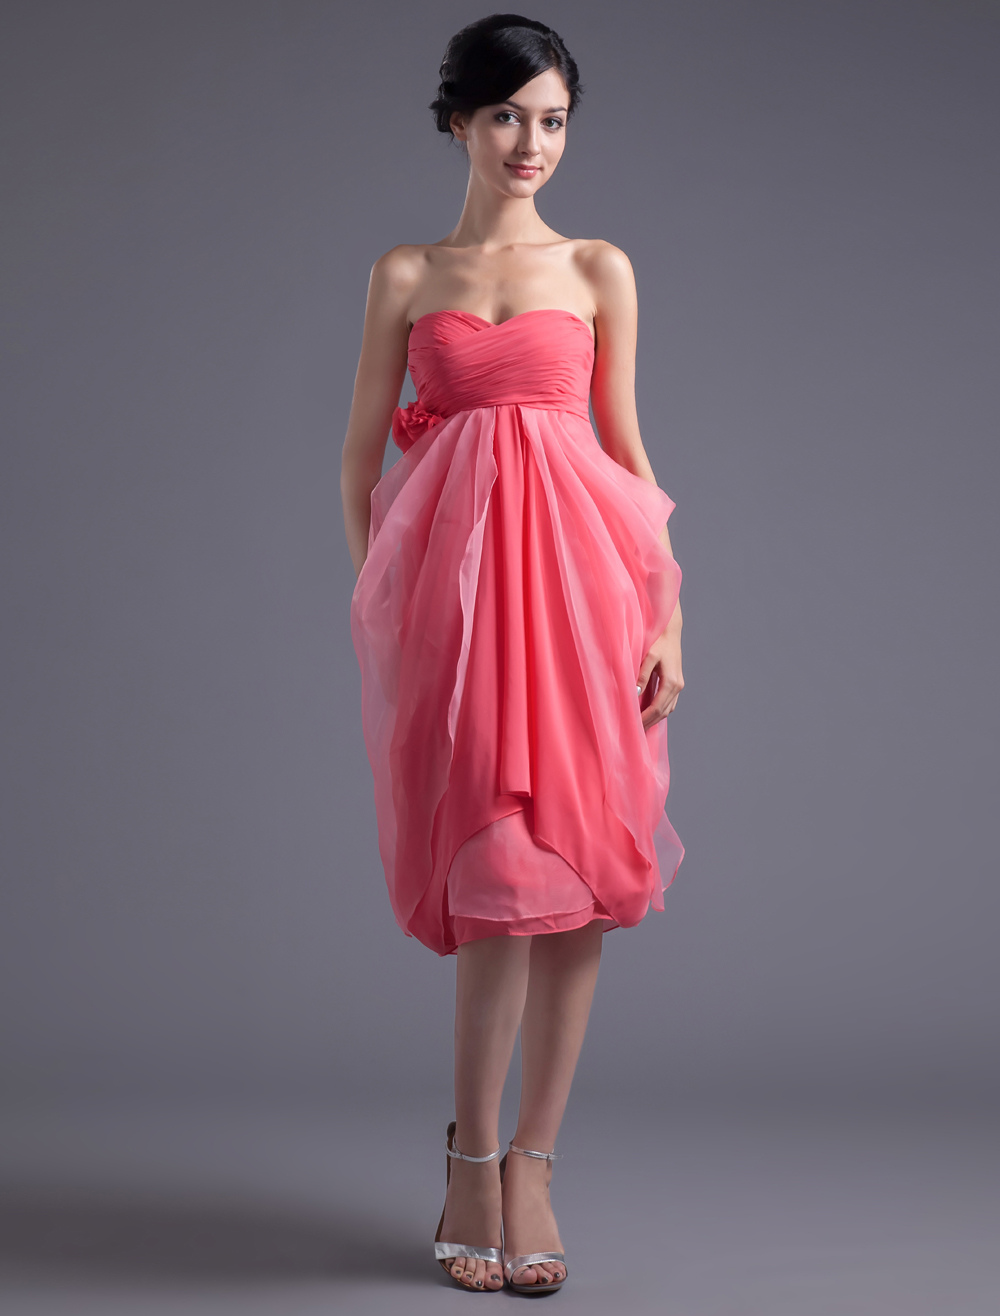 Sweetheart Neck Flower Chiffon Fuchsia Pretty Bridesmaid Dress